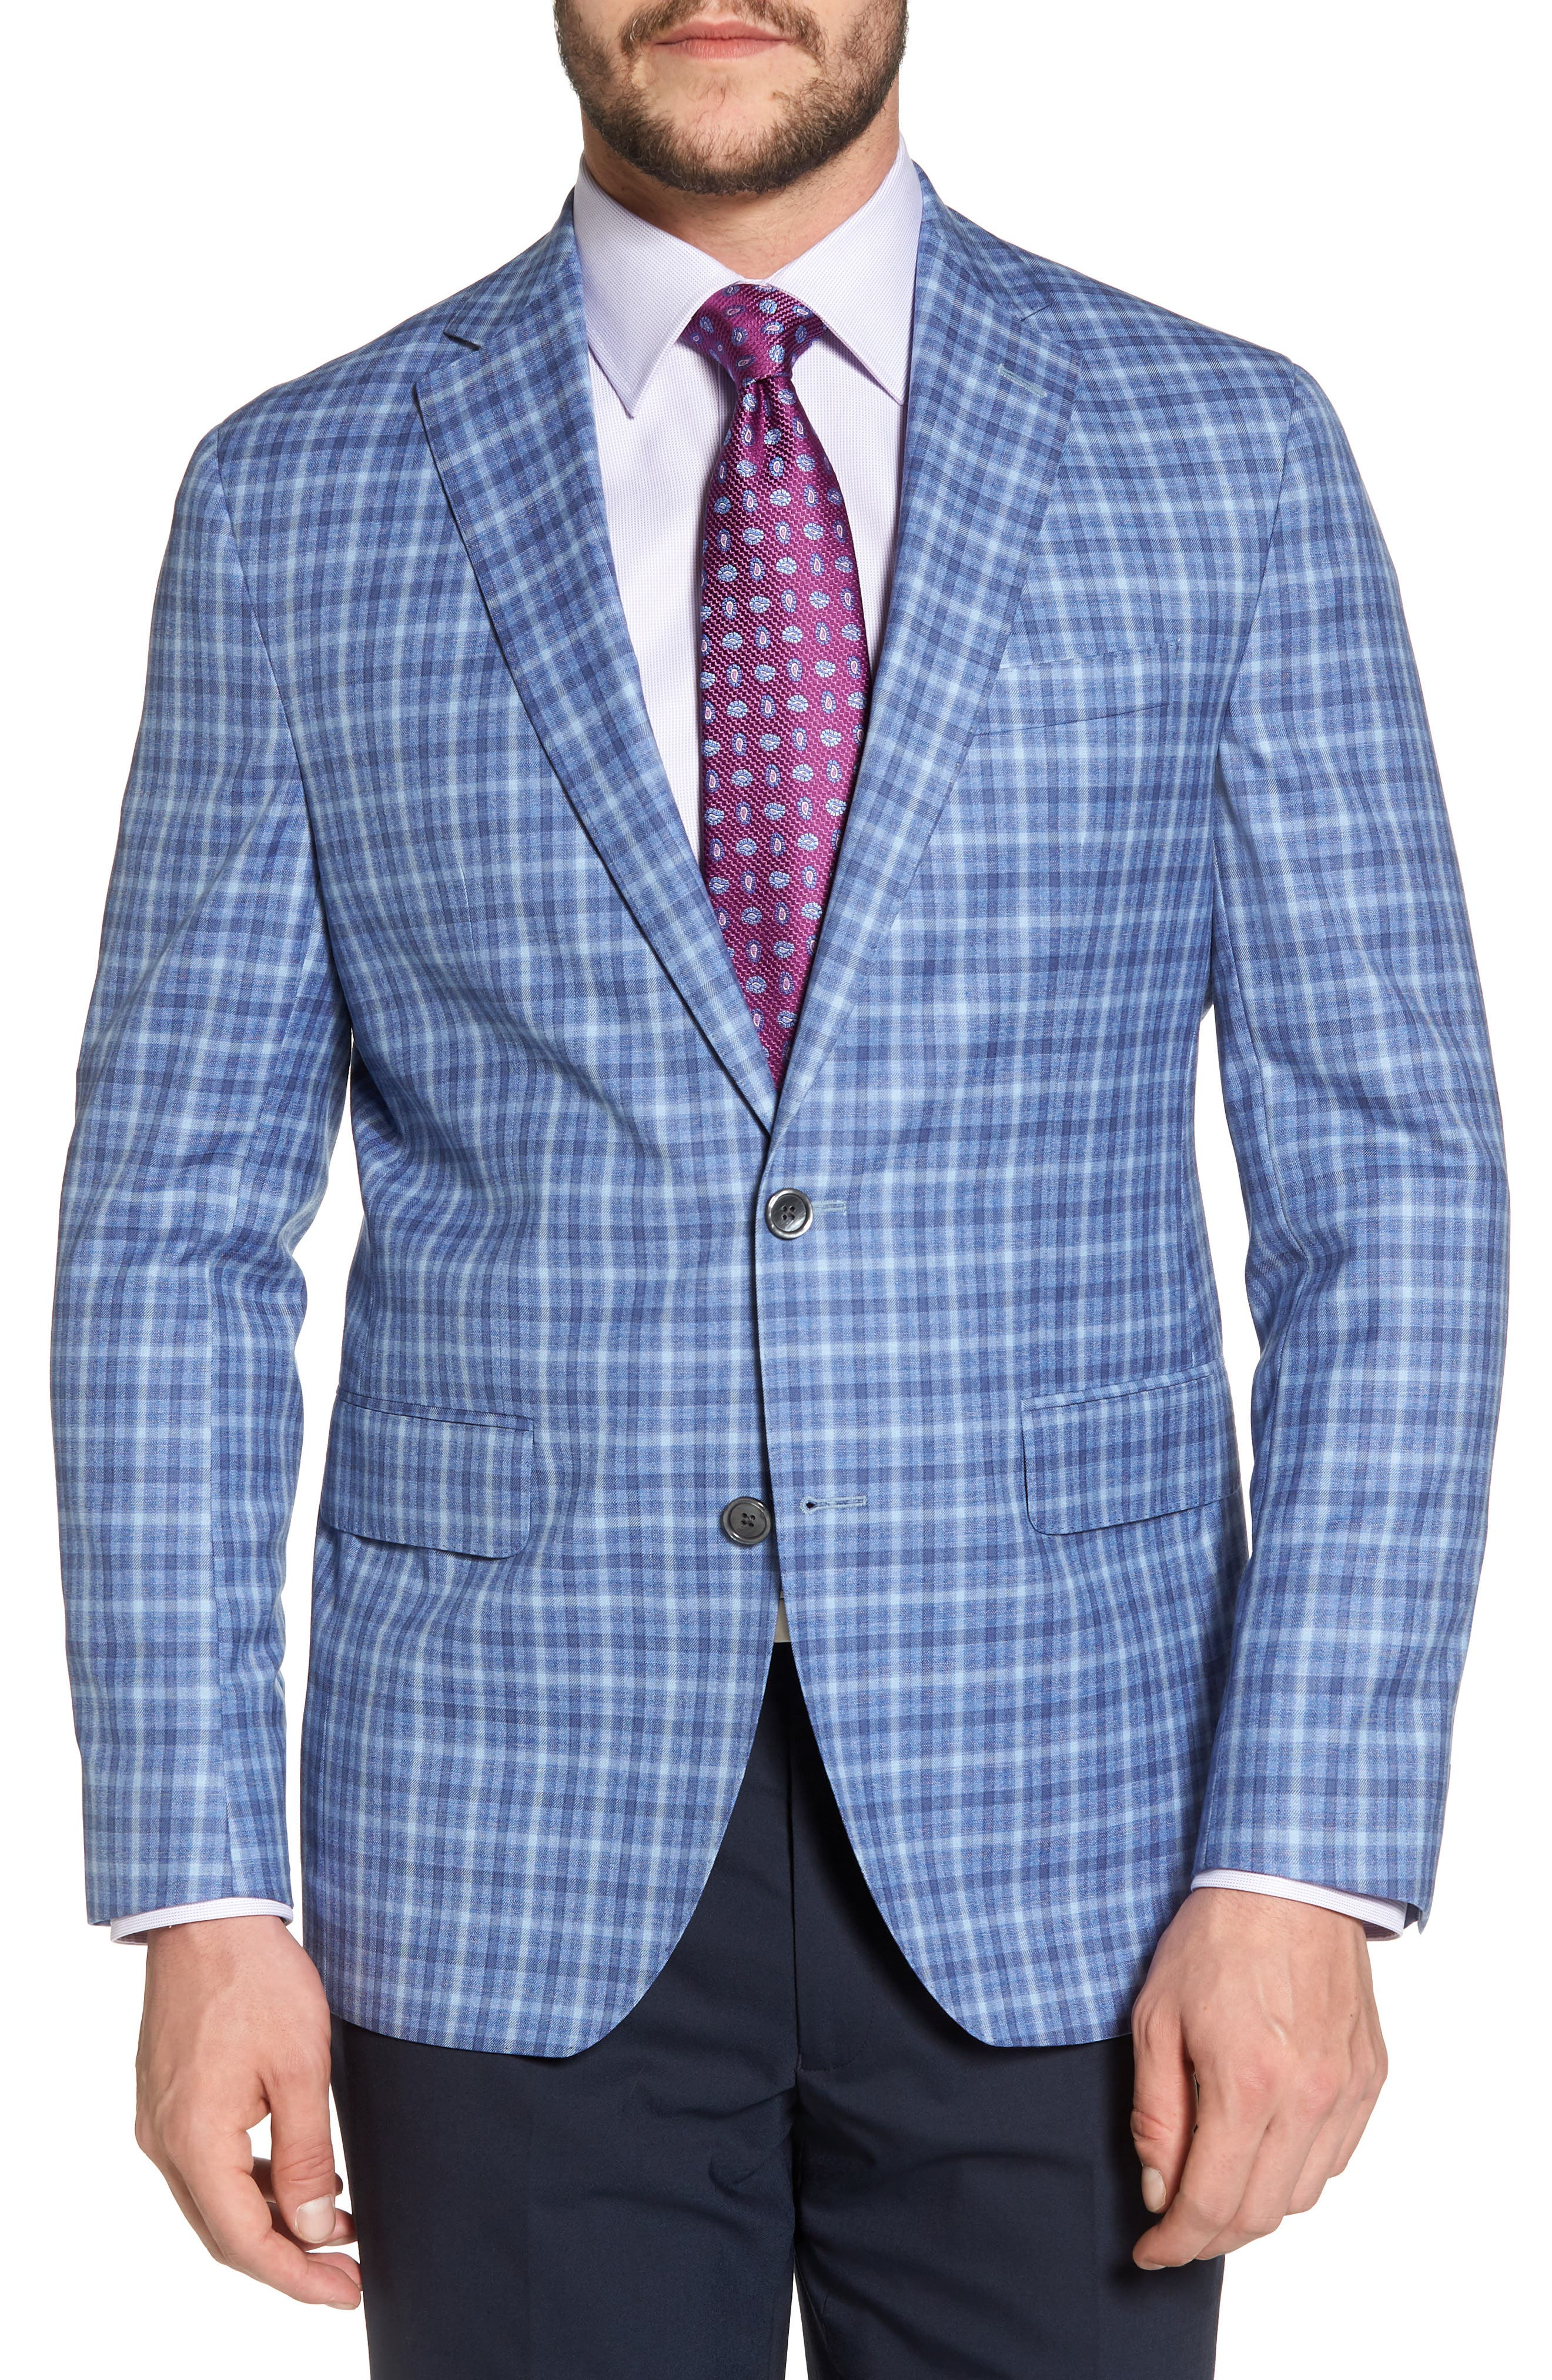 Arnold Classic Fit Plaid Wool Sport Coat,                             Main thumbnail 1, color,                             400